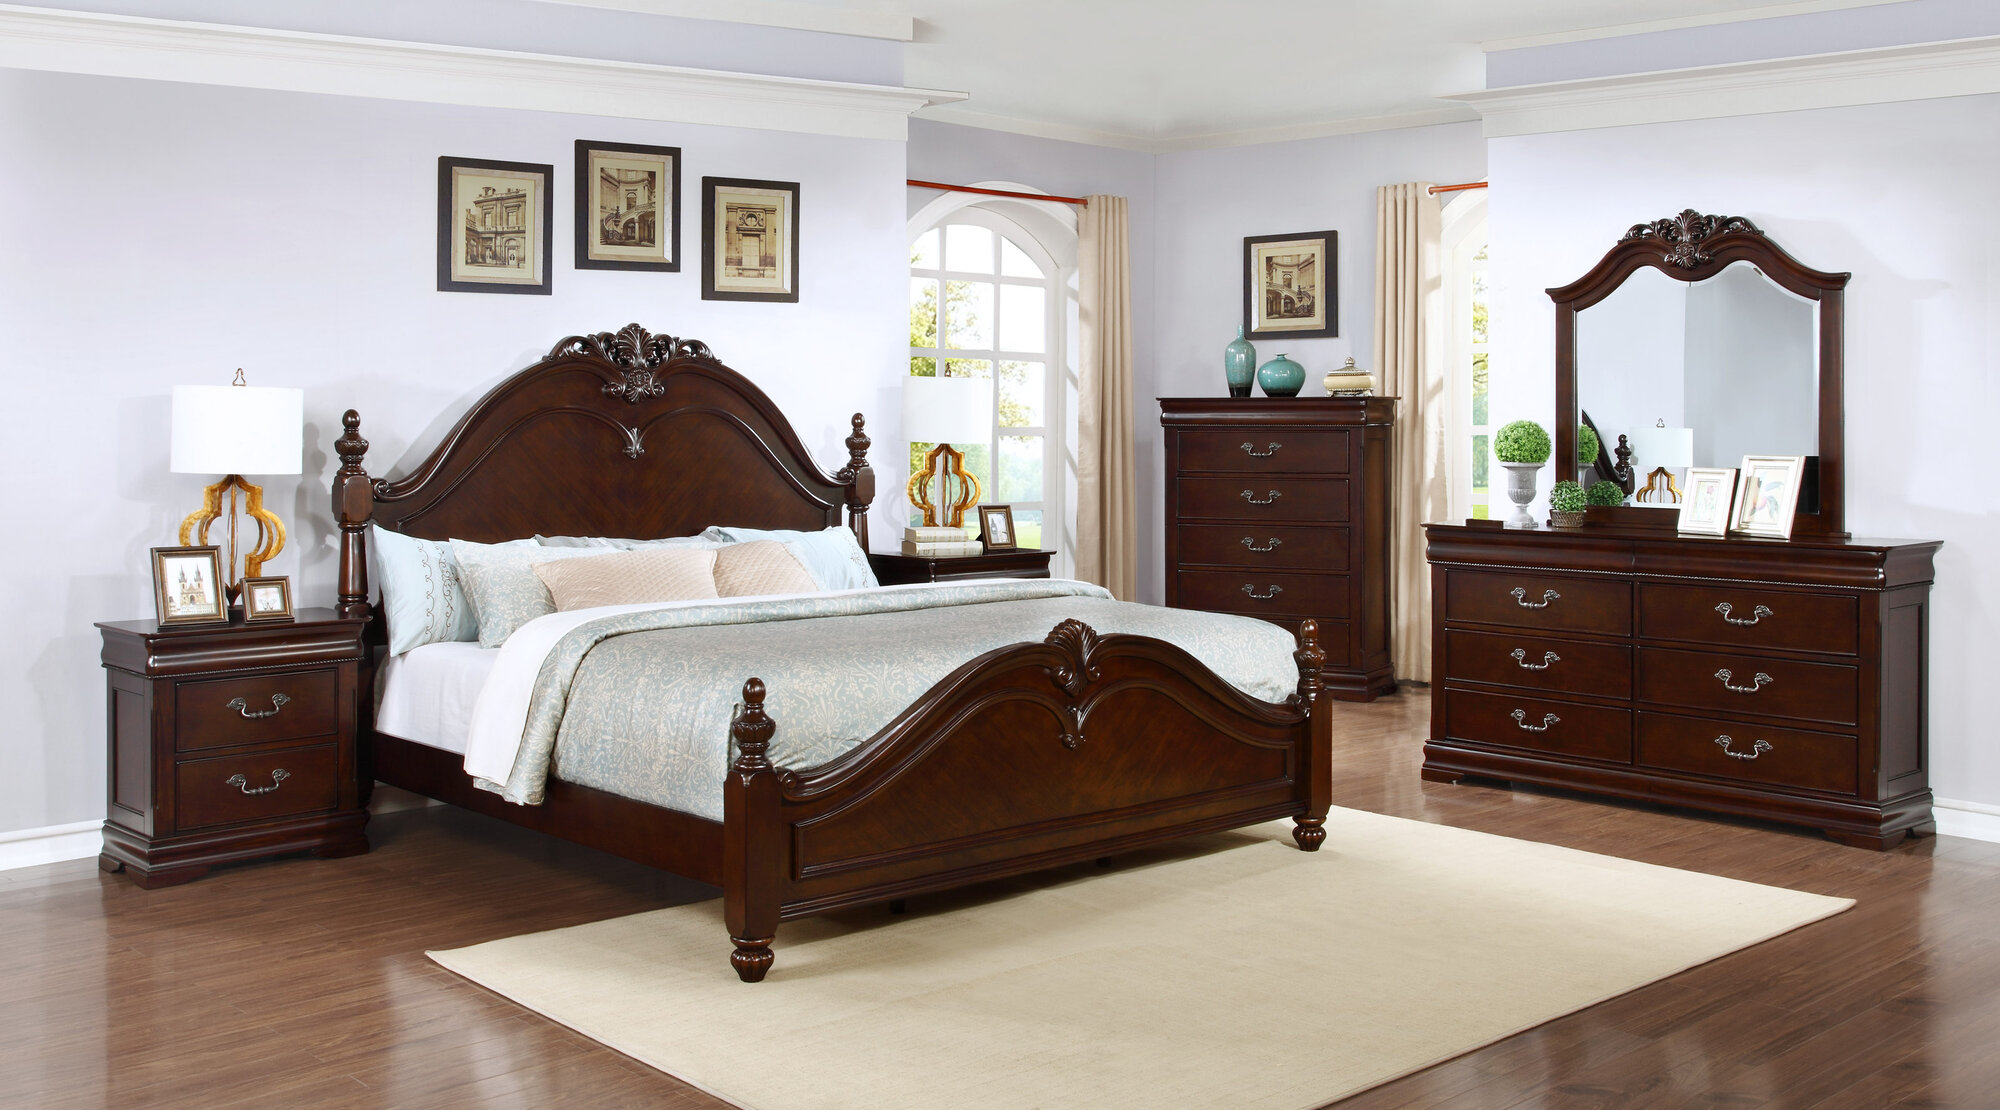 Good Quality Bedroom Furniture: Best Quality Furniture Panel 4 Piece Bedroom Set